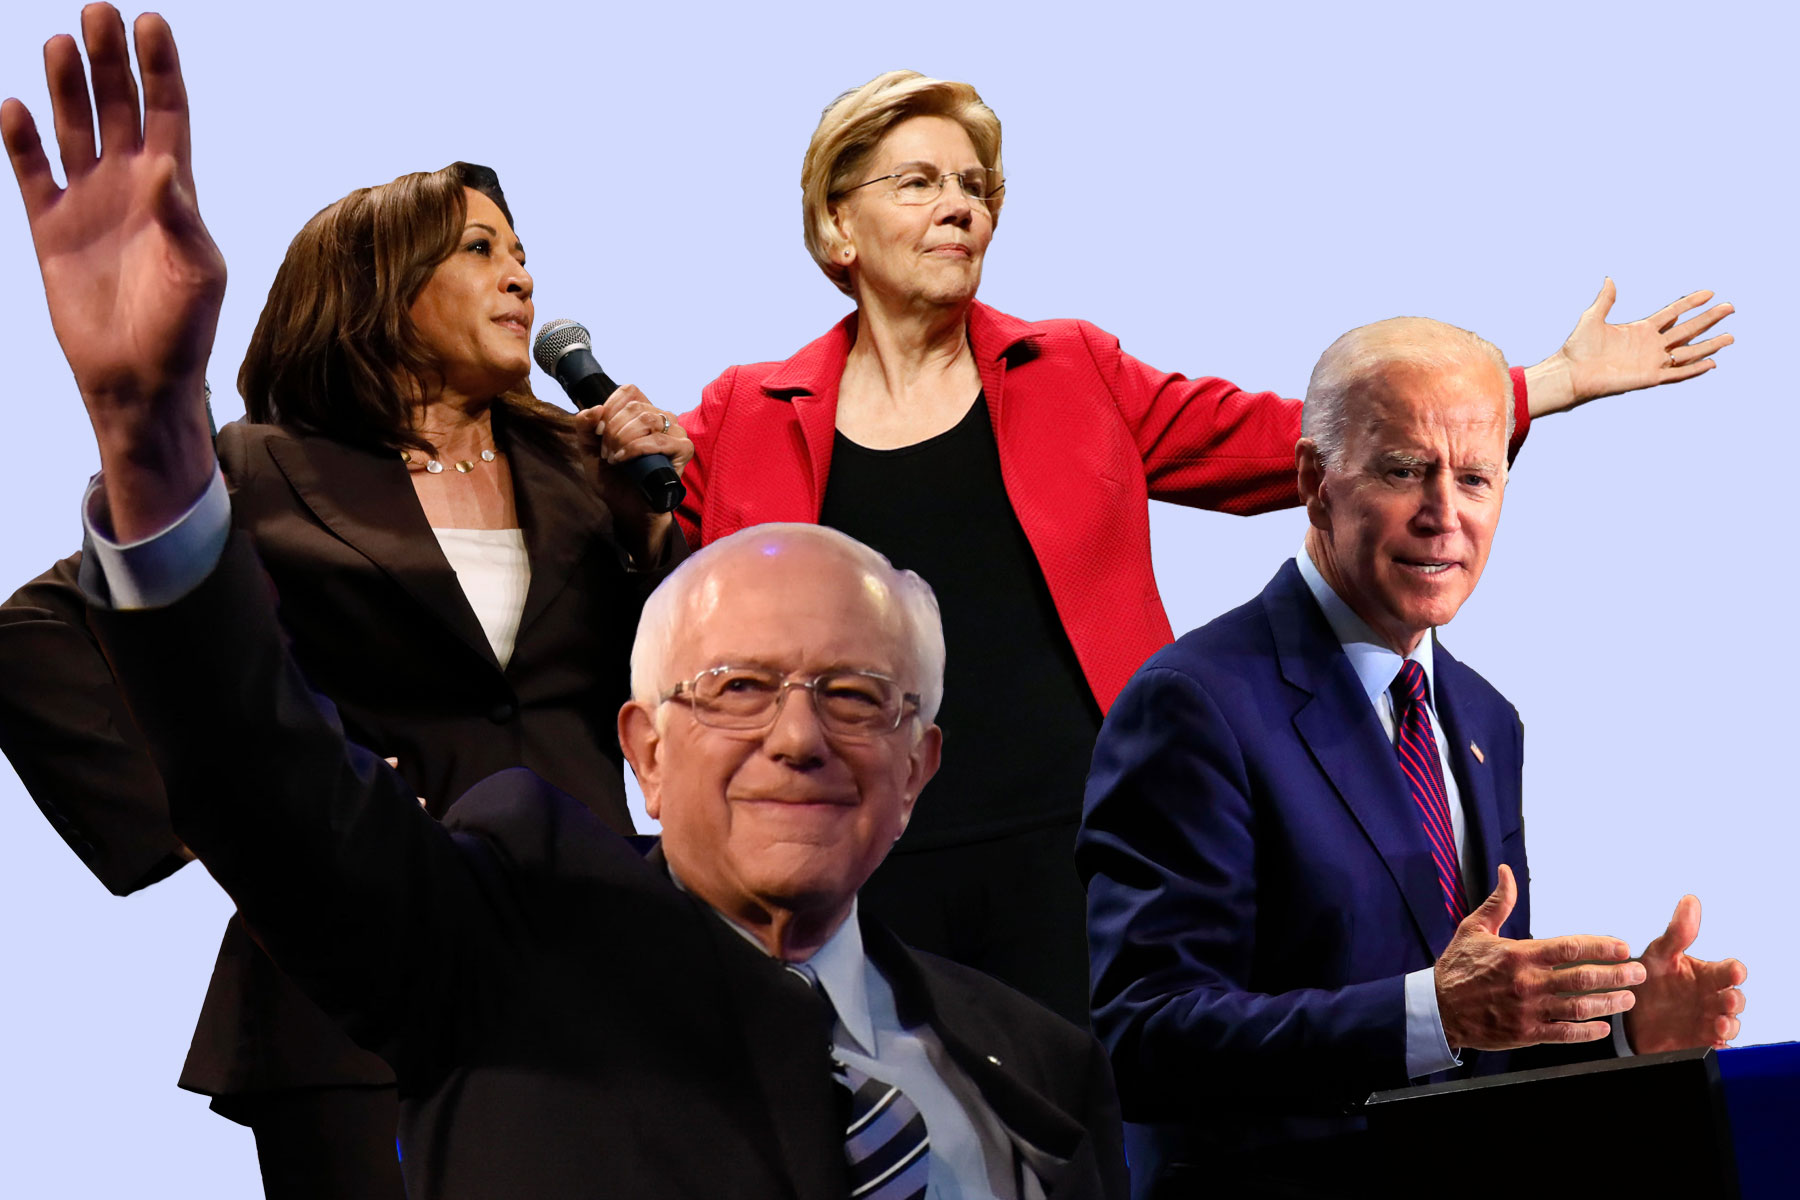 2020 Donkey Candidates Couldn't Care Less About Most Americans